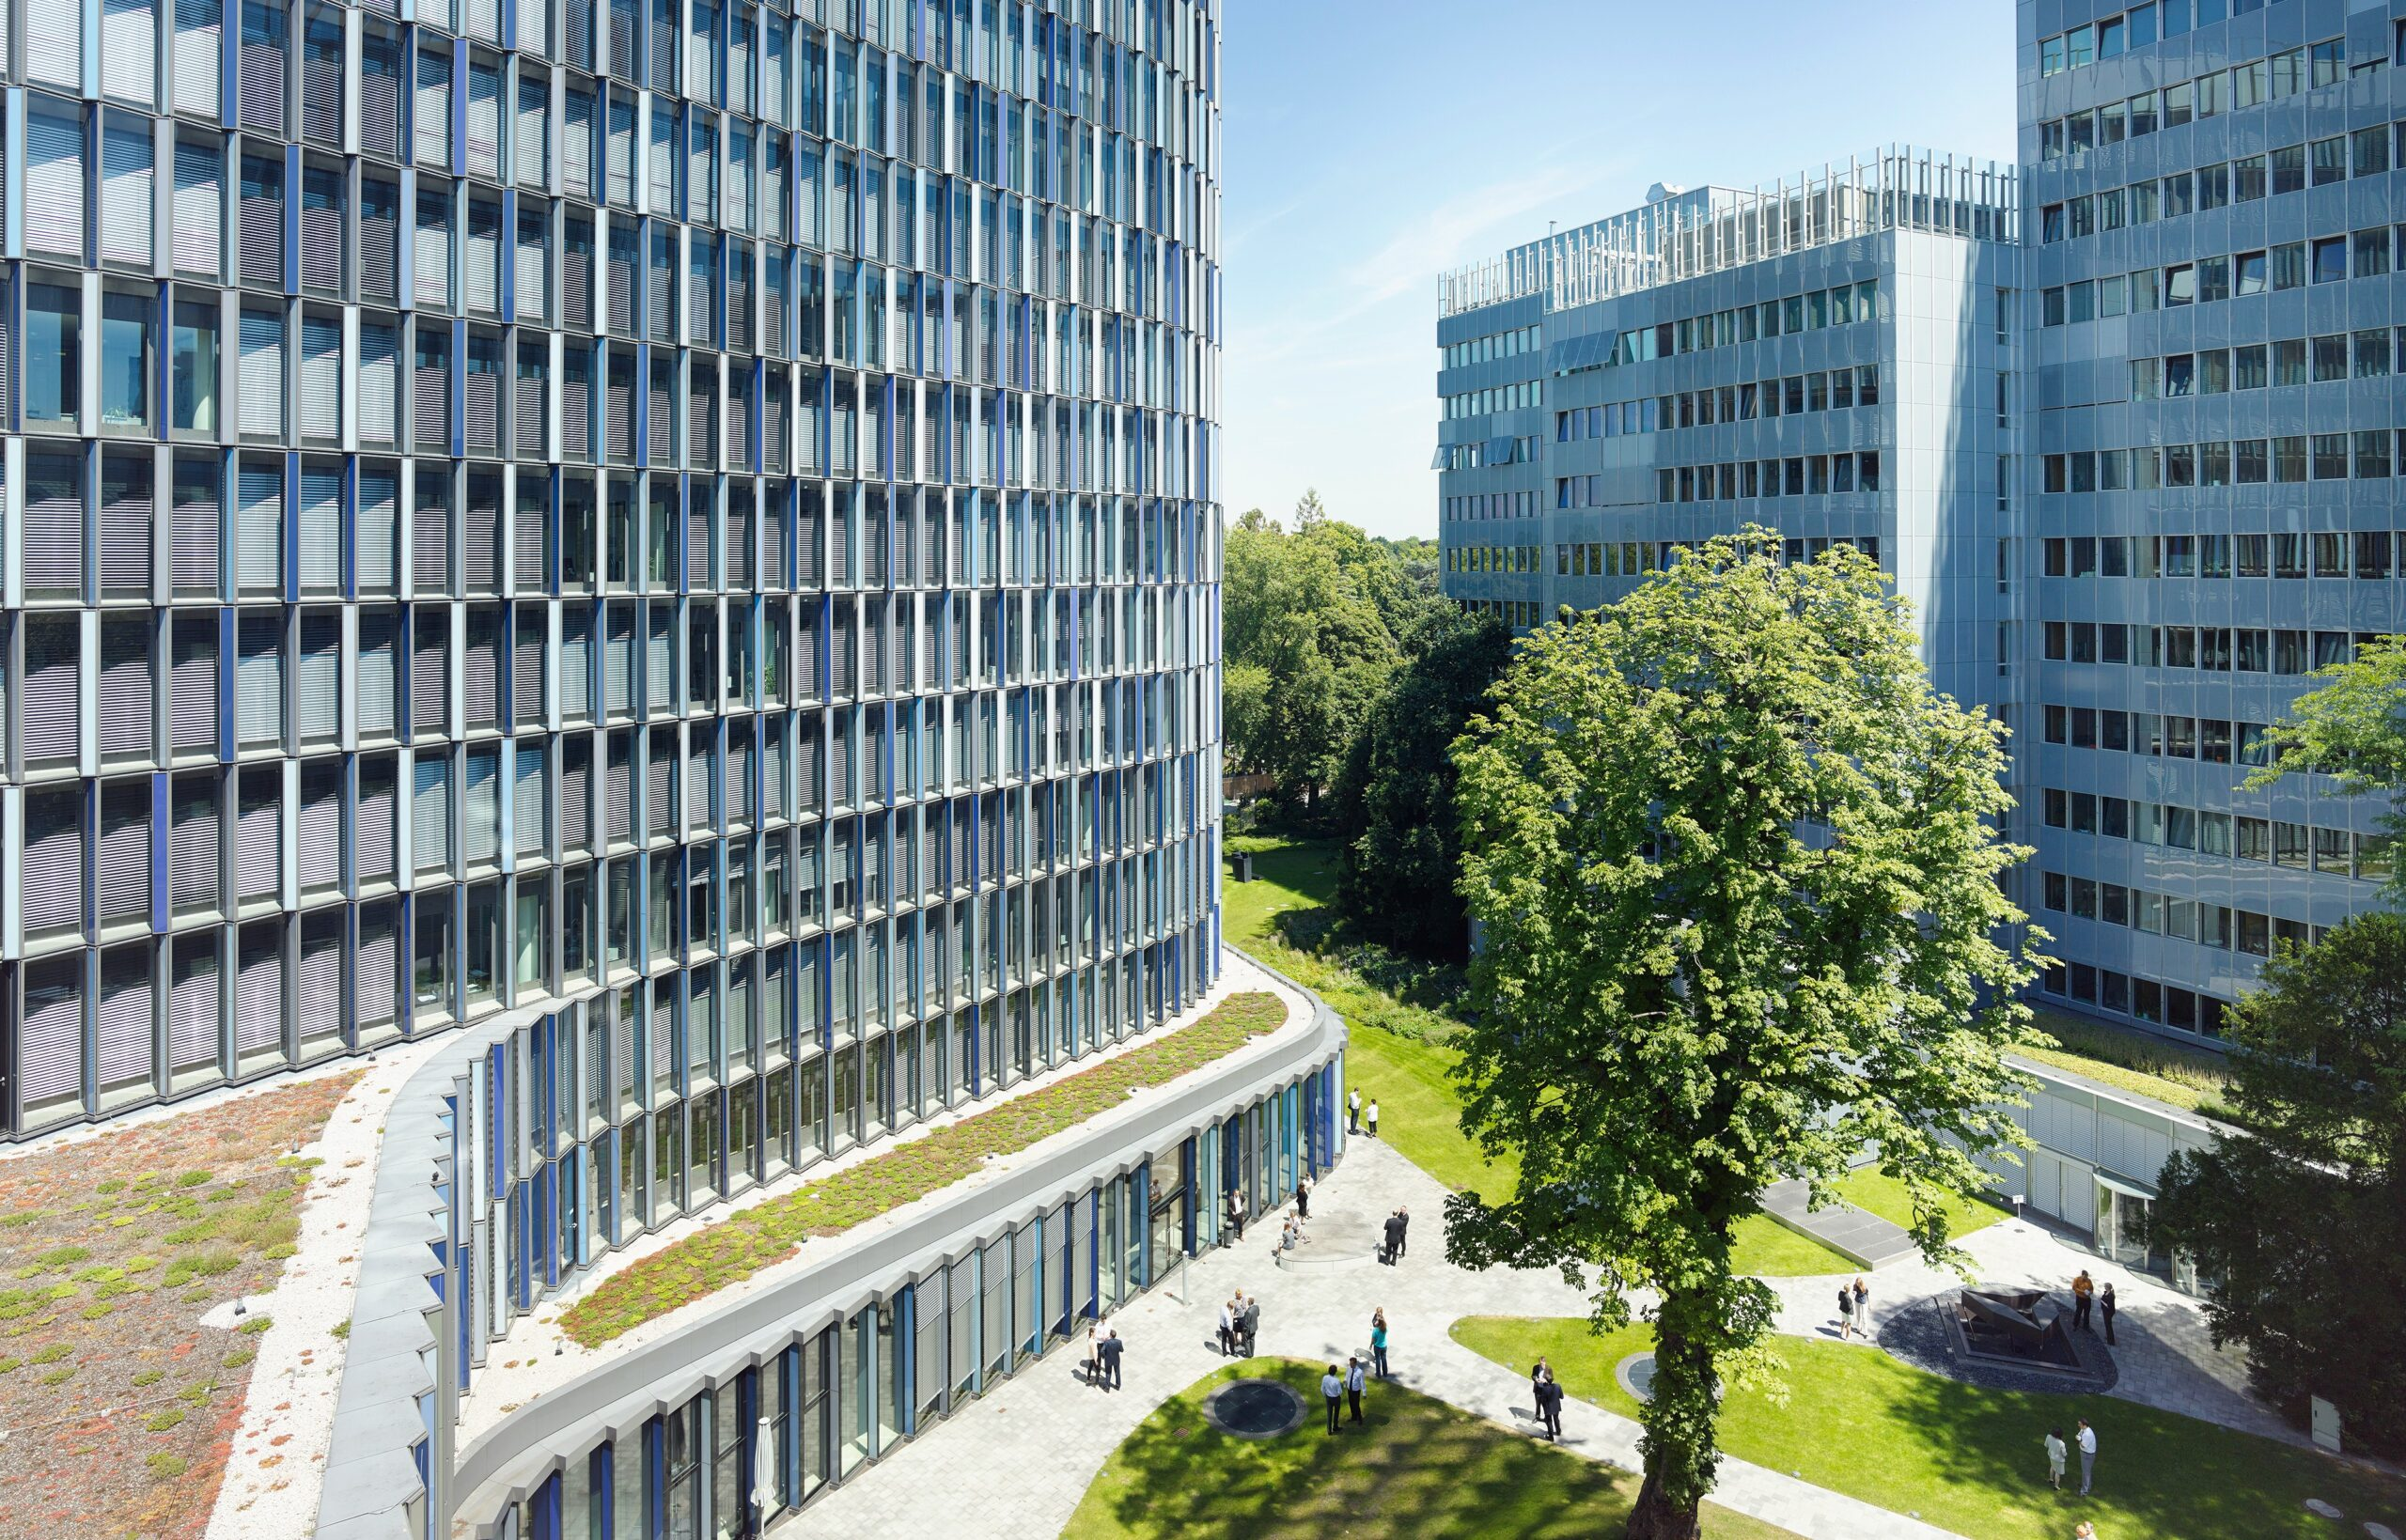 KfW IPEX-Bank resides in one of the most environmental friendly office buildings in the world: the